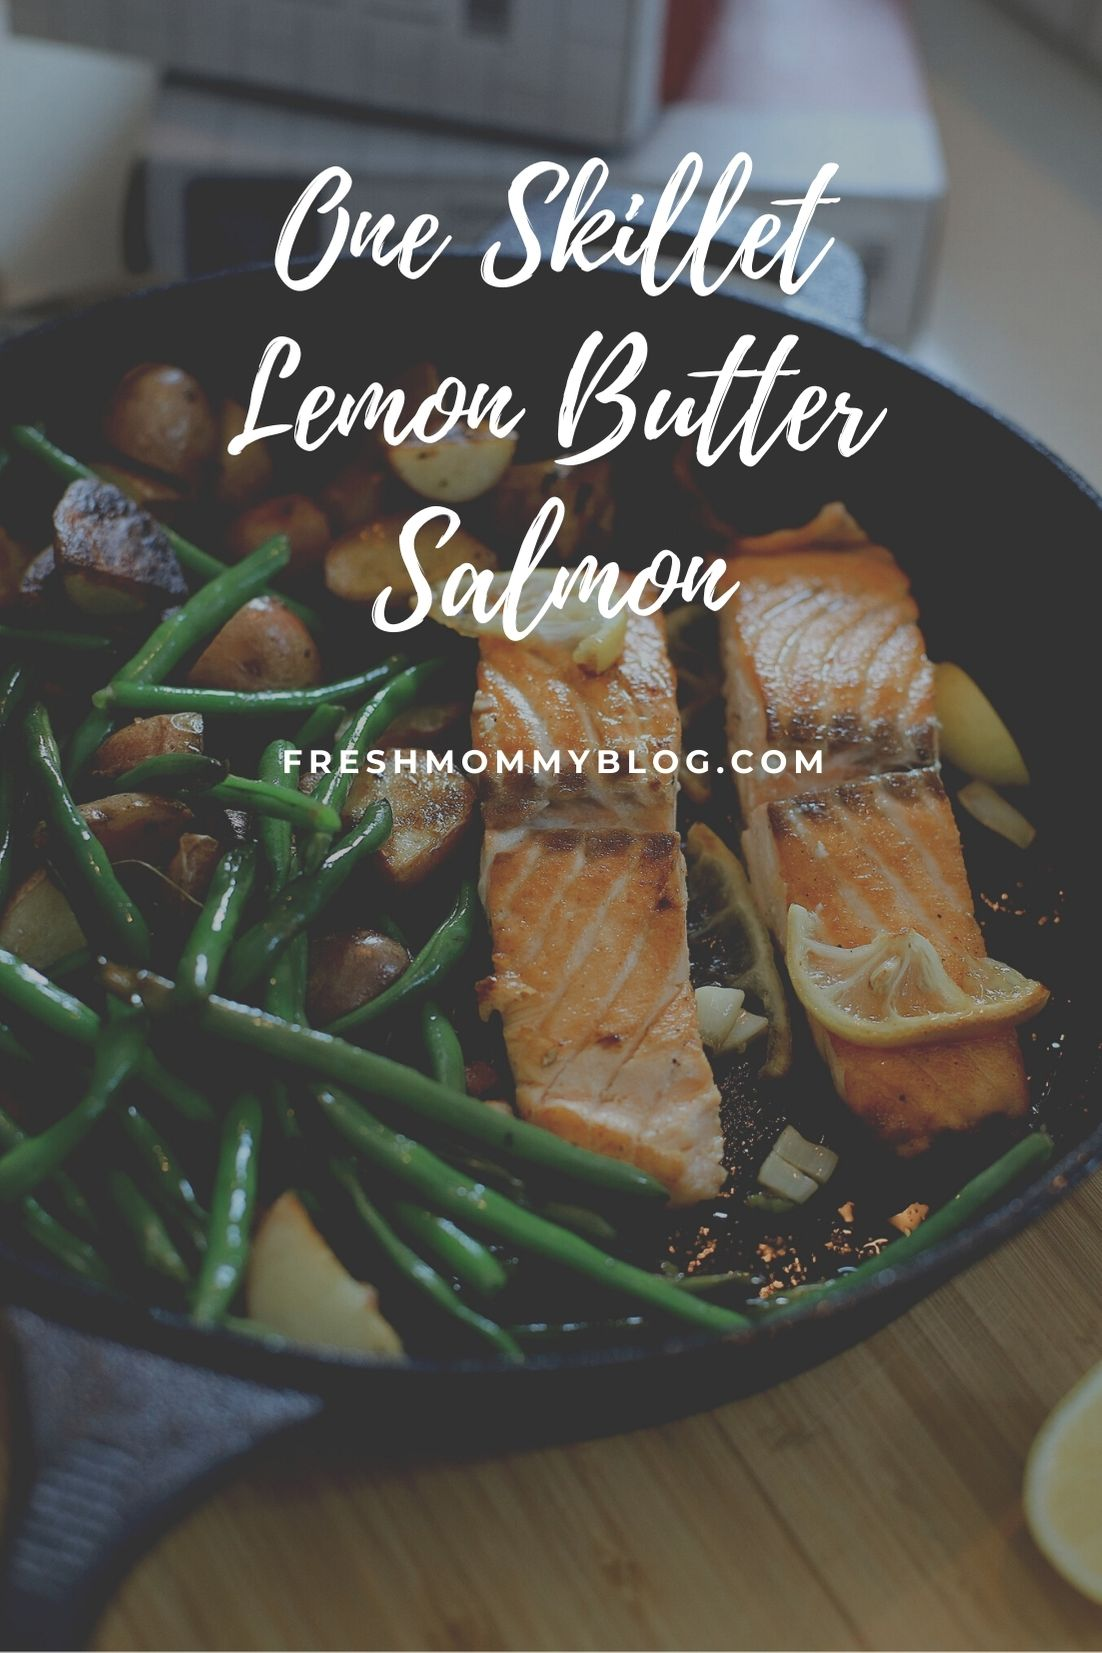 One Pan Salmon Skillet with Garlic Lemon Butter | Salmon Skillet by possible Florida lifestyle blog, Fresh Mommy Blog: image of salmon, green beans, and potatoes in a skillet.